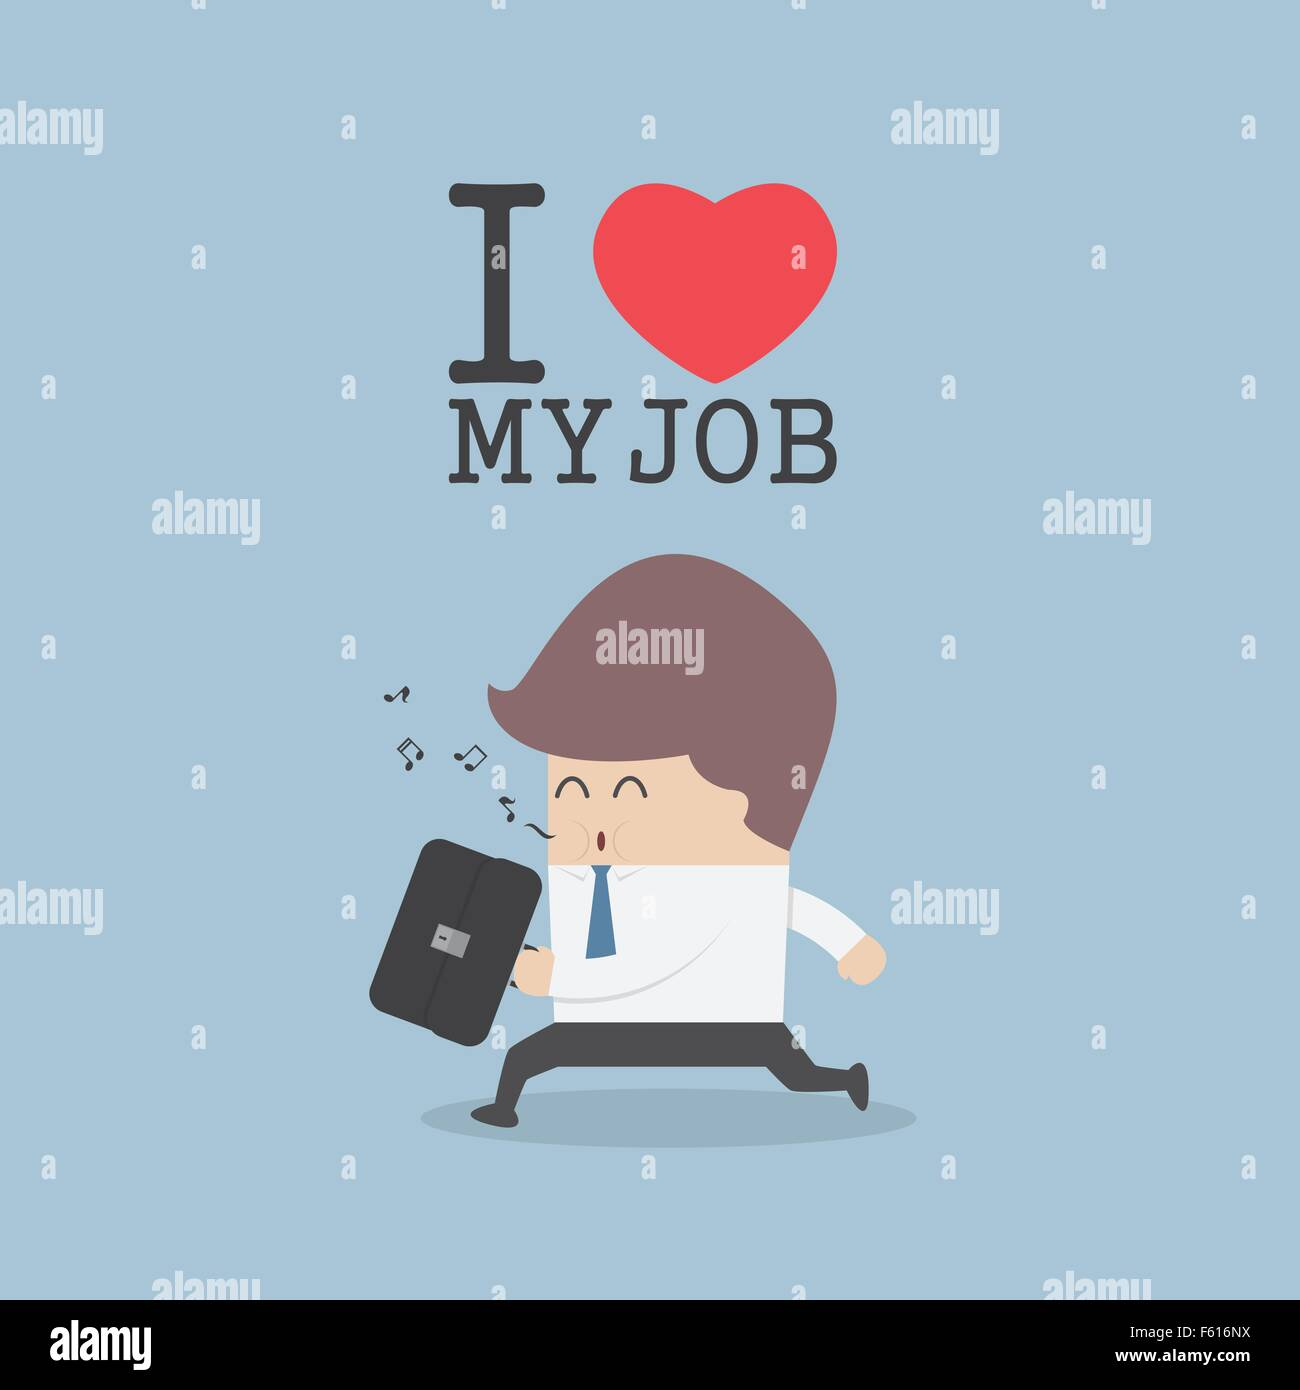 I Love My Job Stock Photos & I Love My Job Stock Images - Alamy